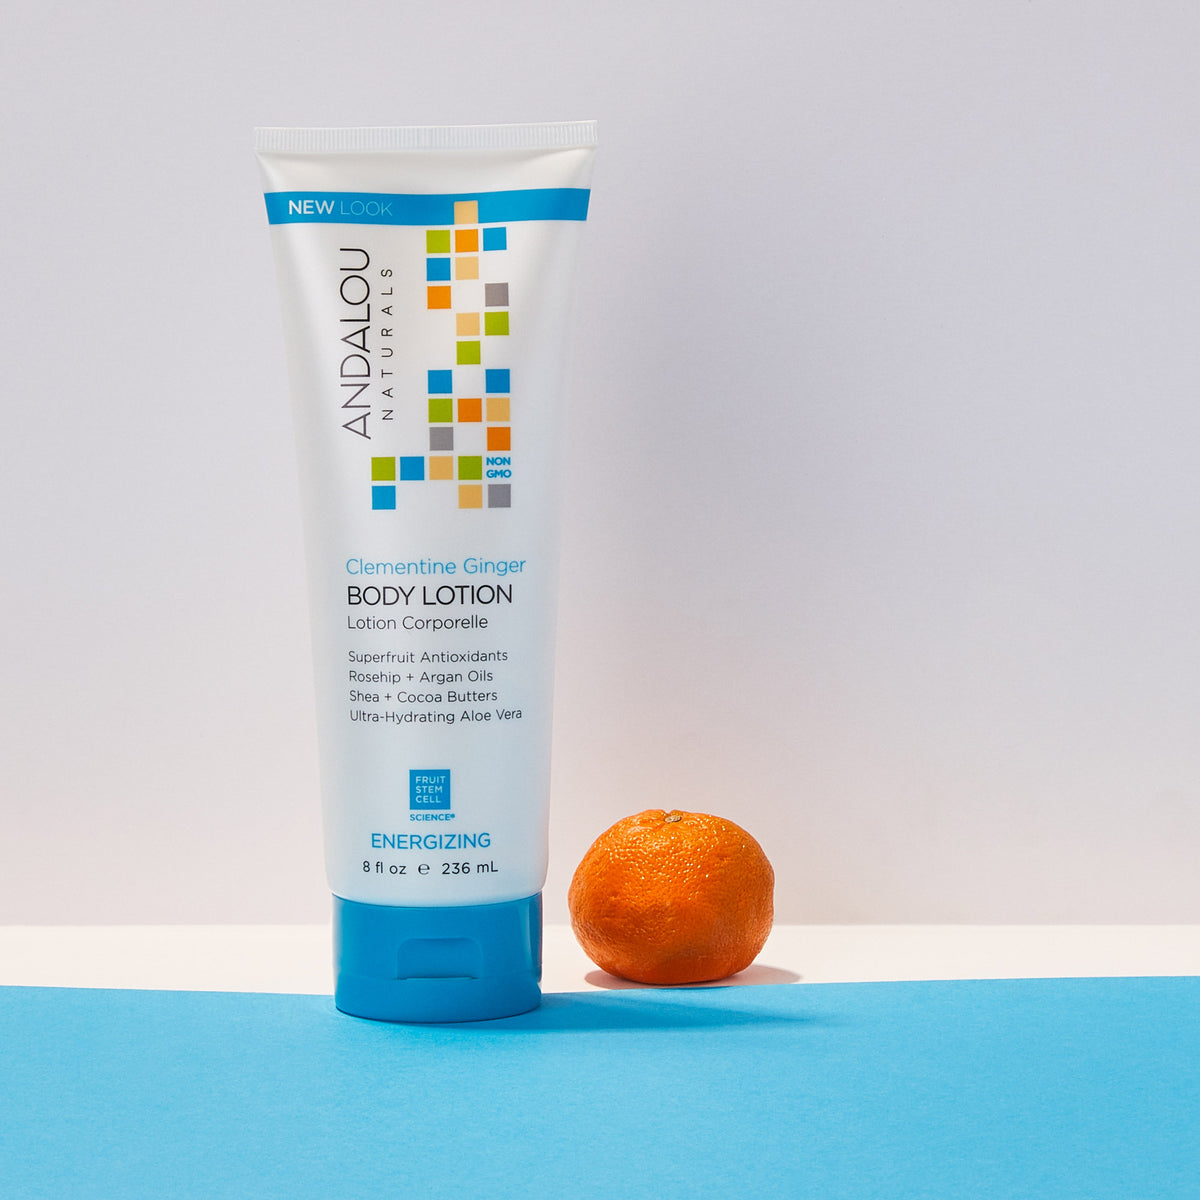 Andalou Naturals Clementine Ginger Energizing Body Lotion with clementine